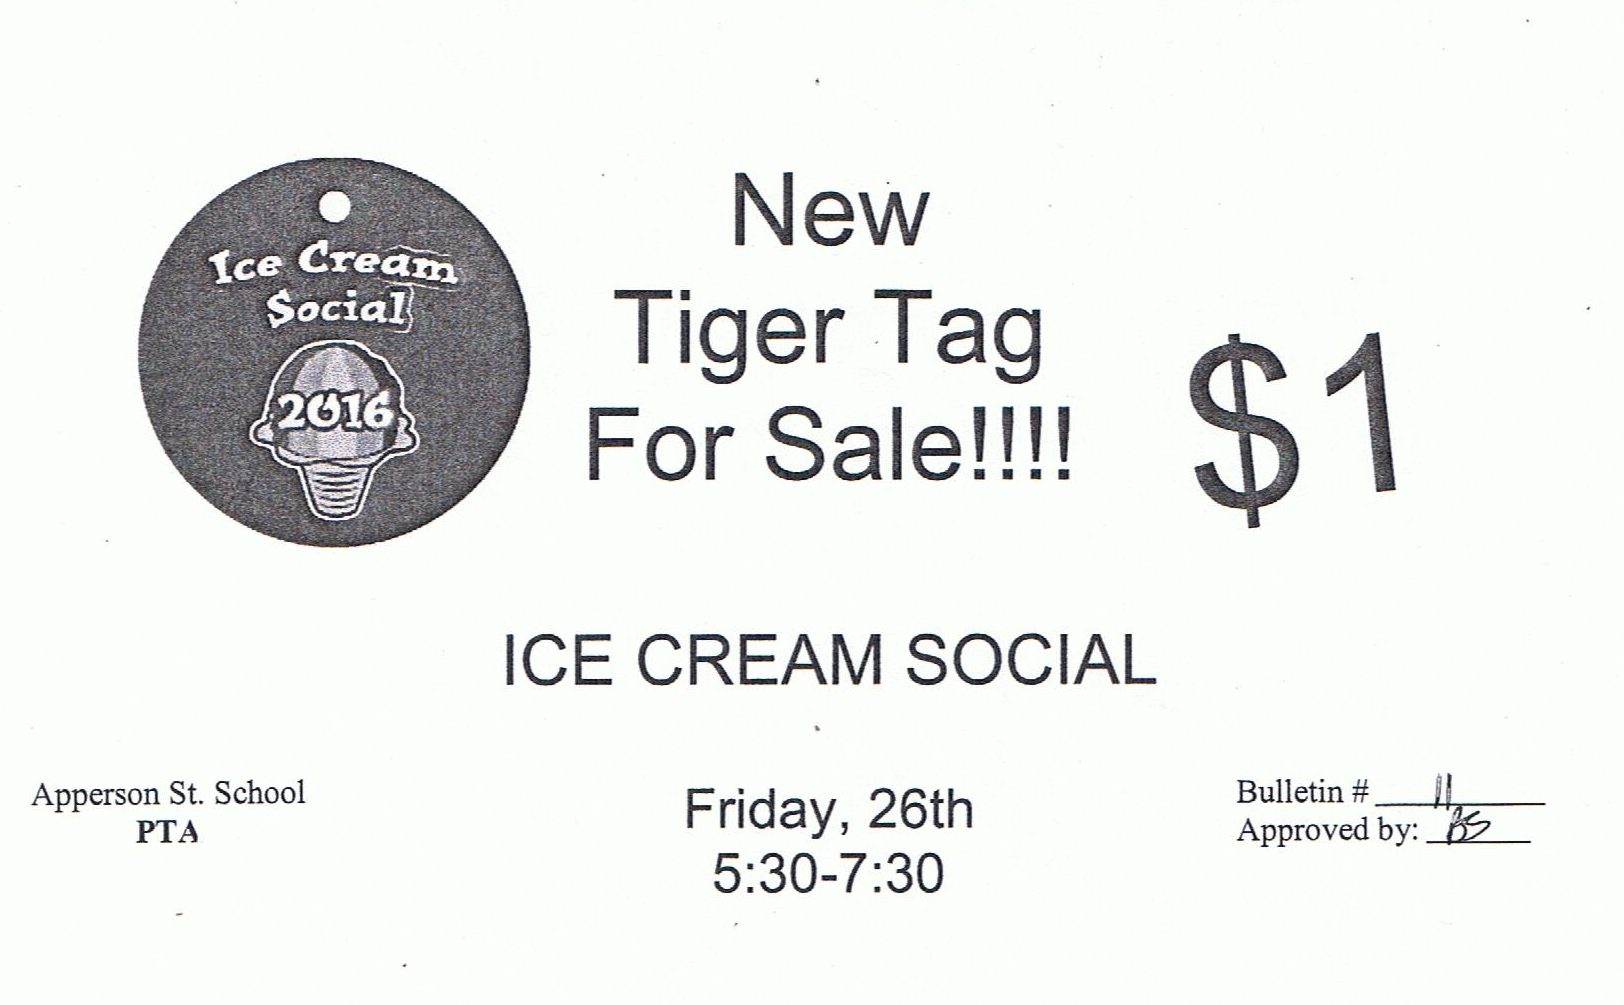 ice cream social tiger tag